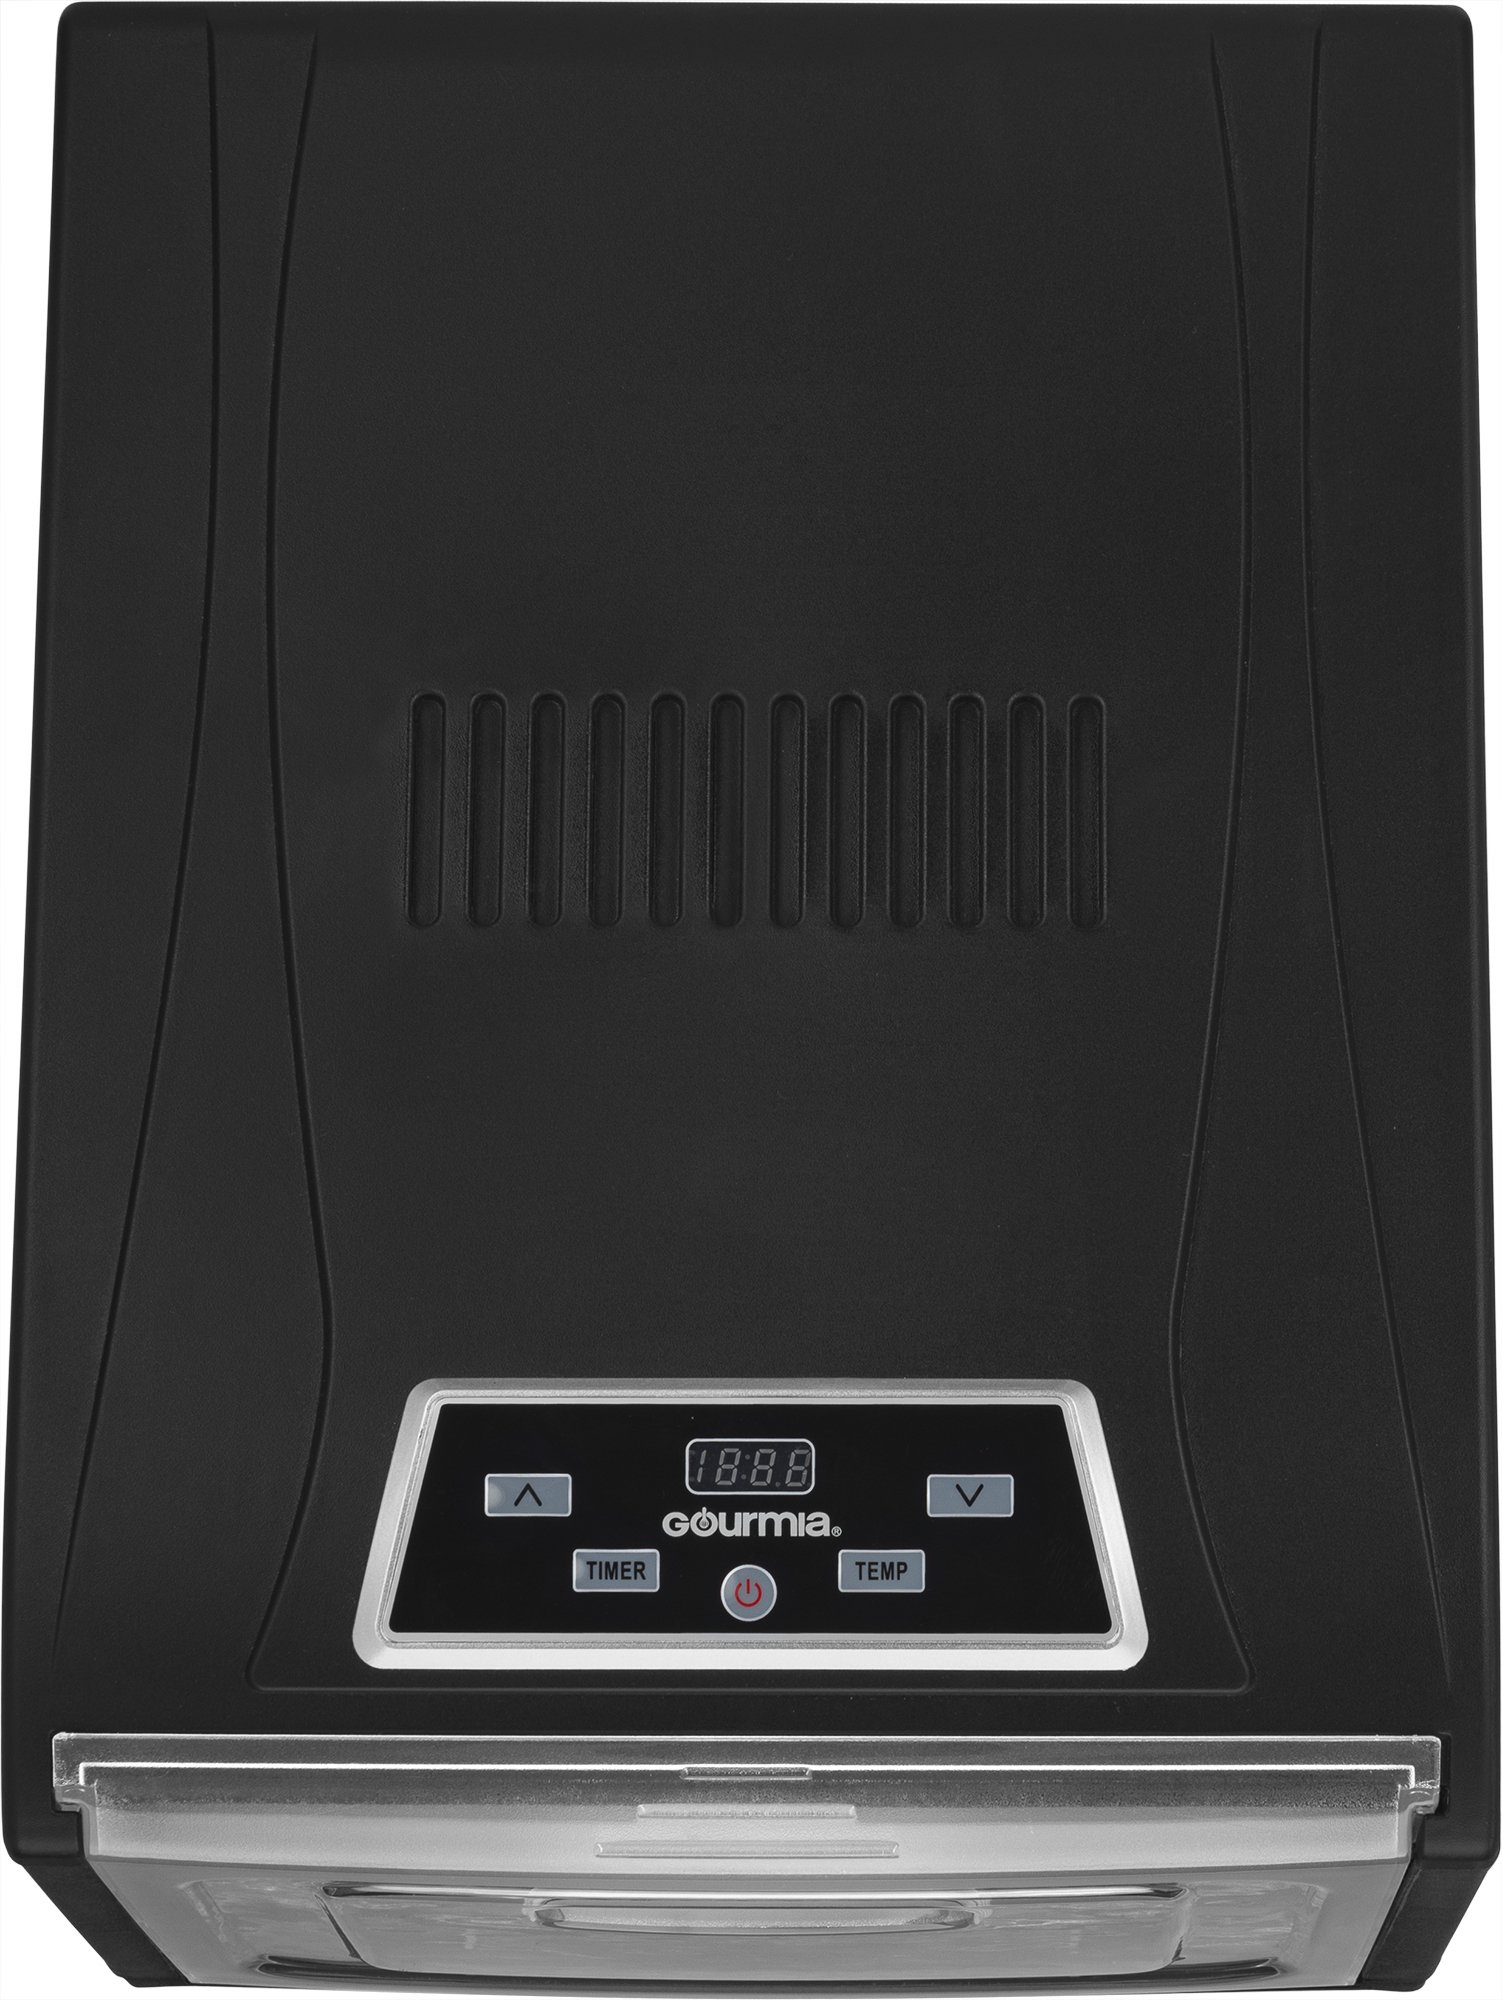 Gourmia GFD1950 Digital Food Dehydrator - 9 Drying Trays Plus Fruit Leather Tray - Digital Temperature Control - Transparent Window - Free recipe Book Included by Gourmia (Image #4)